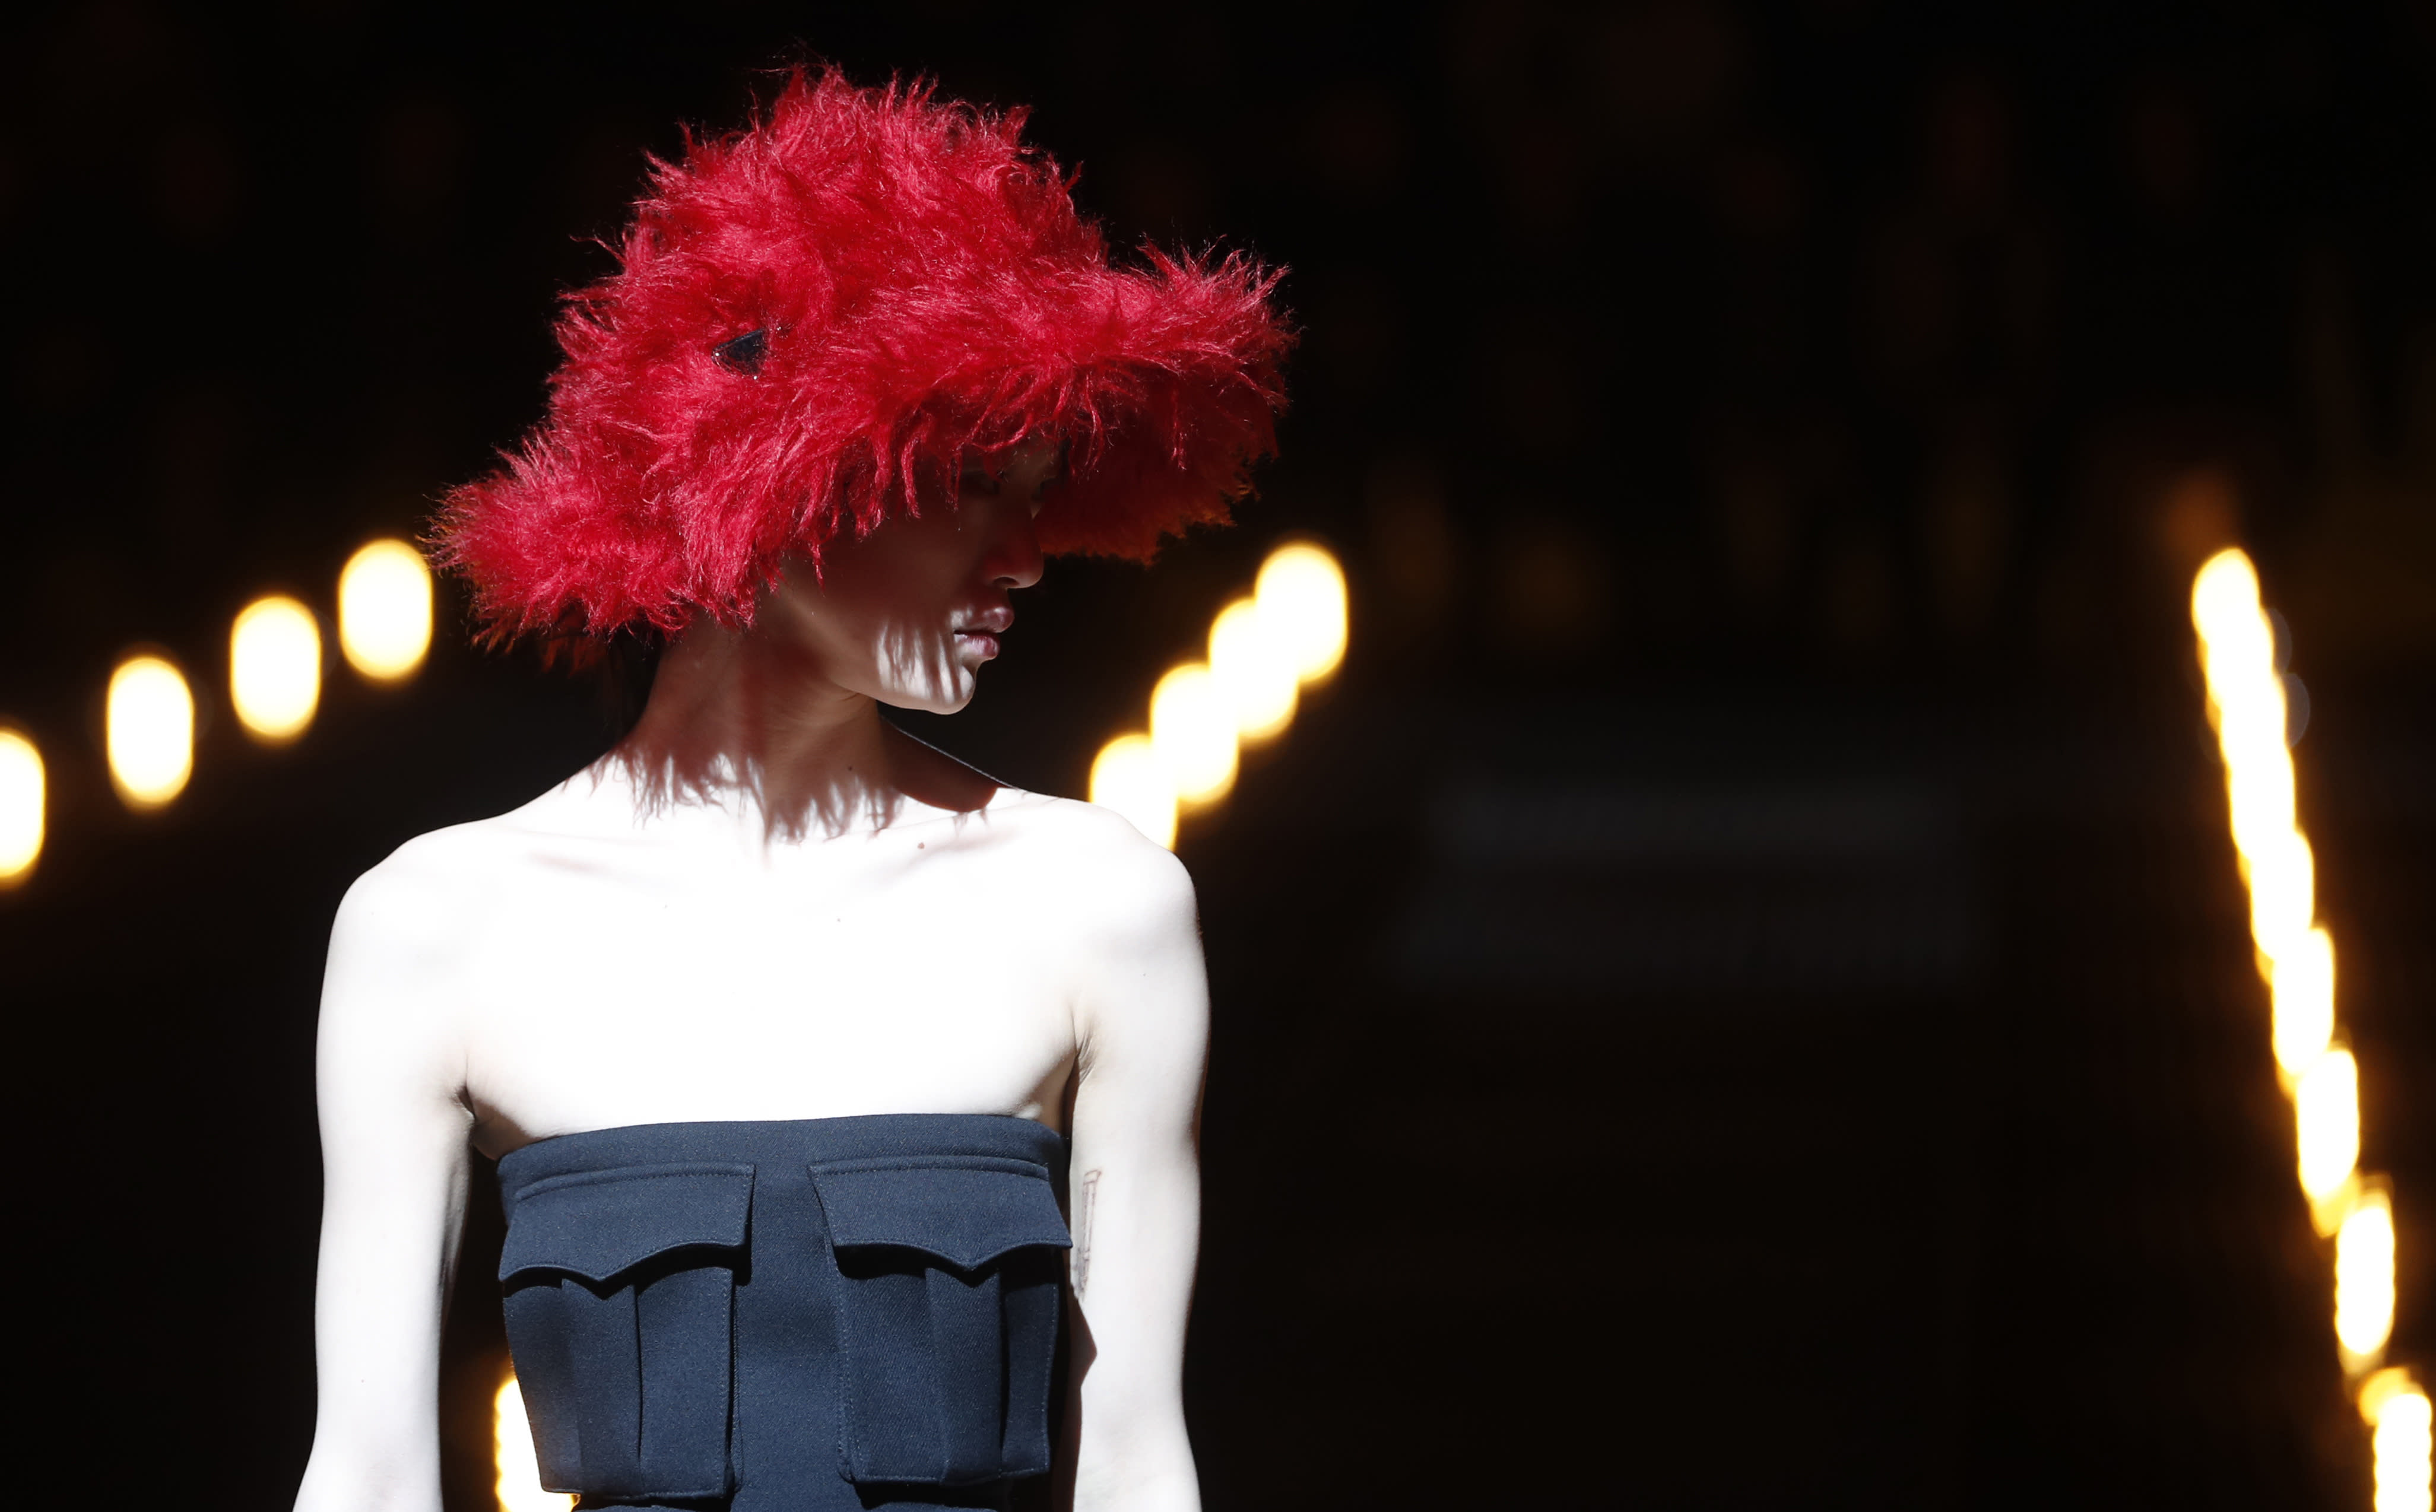 Prada eyes strong military silhouette, with whimsy